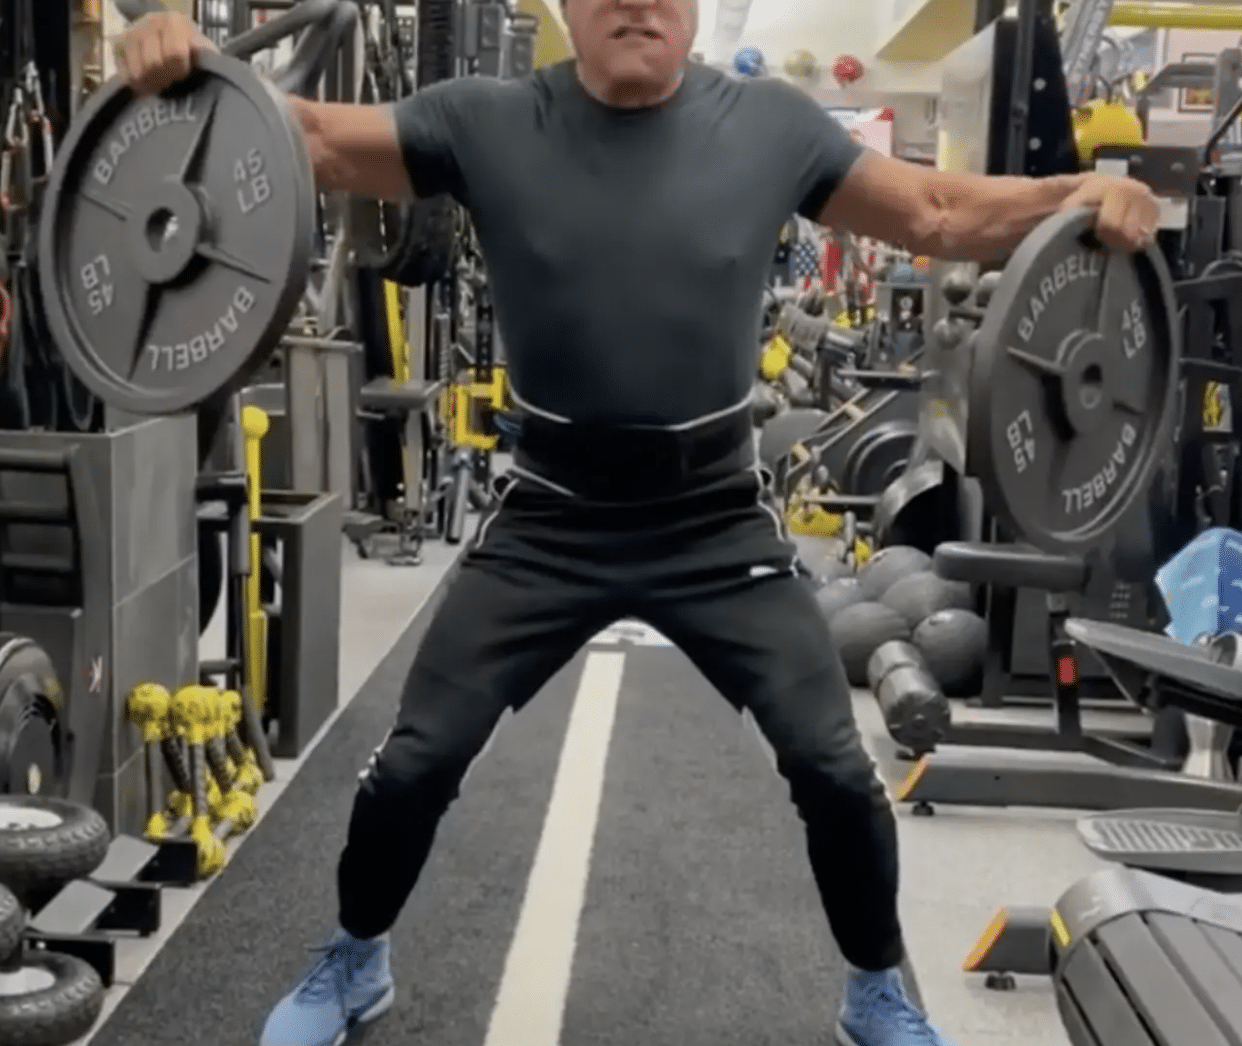 Sylvester Stallone's weight-lifting video